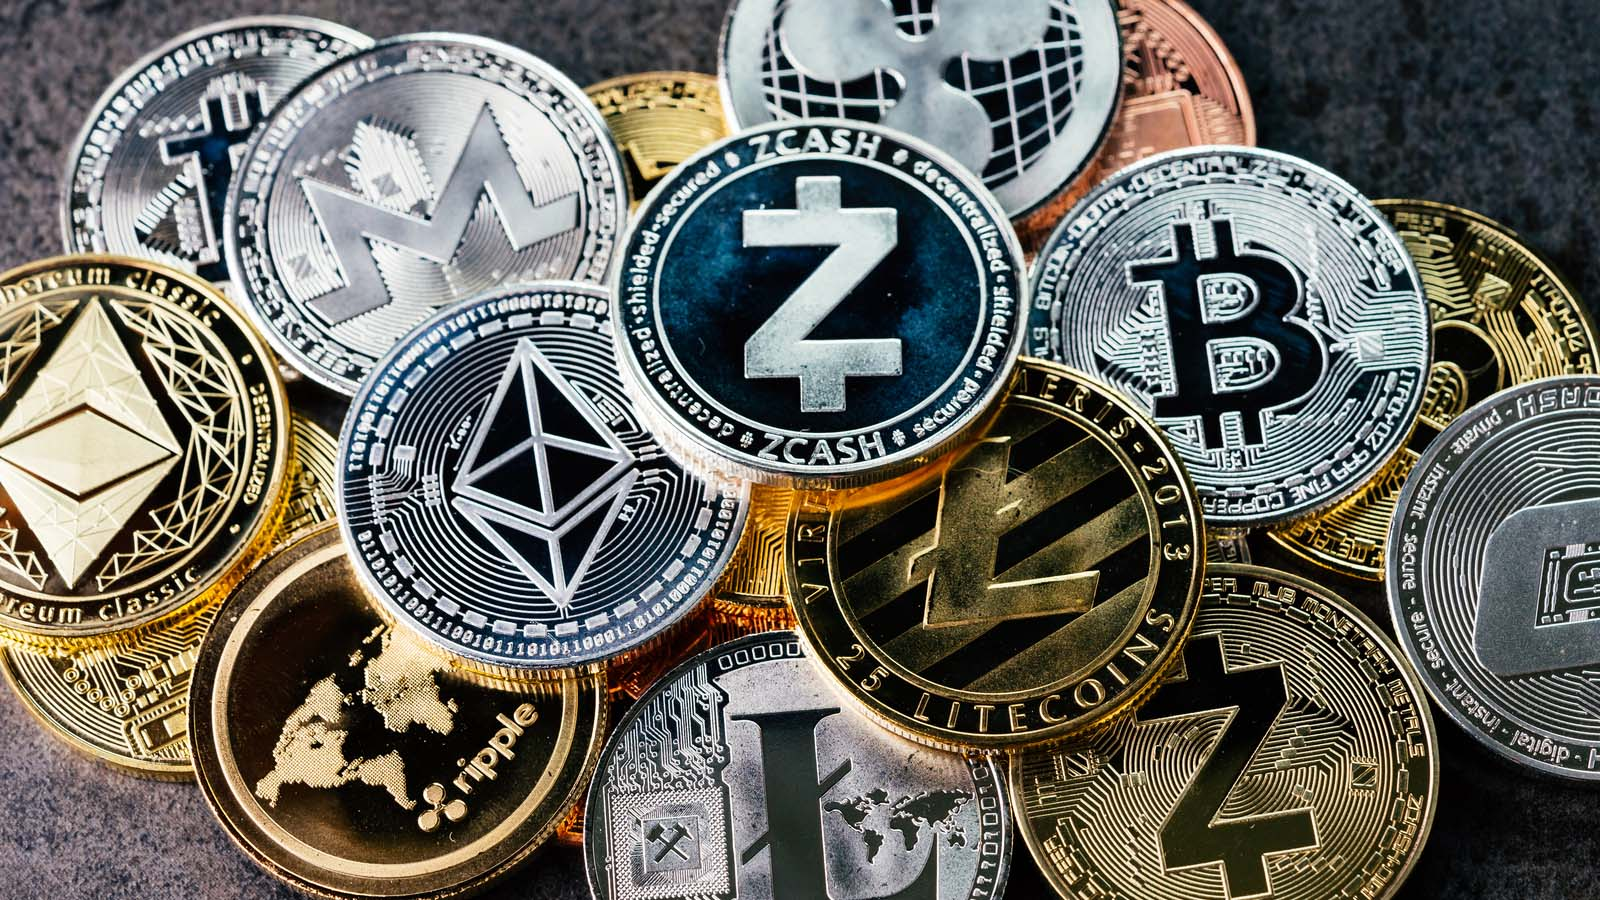 Cryptocurrencies that outperform Bitcoin, the BTC mining investment boom, and more